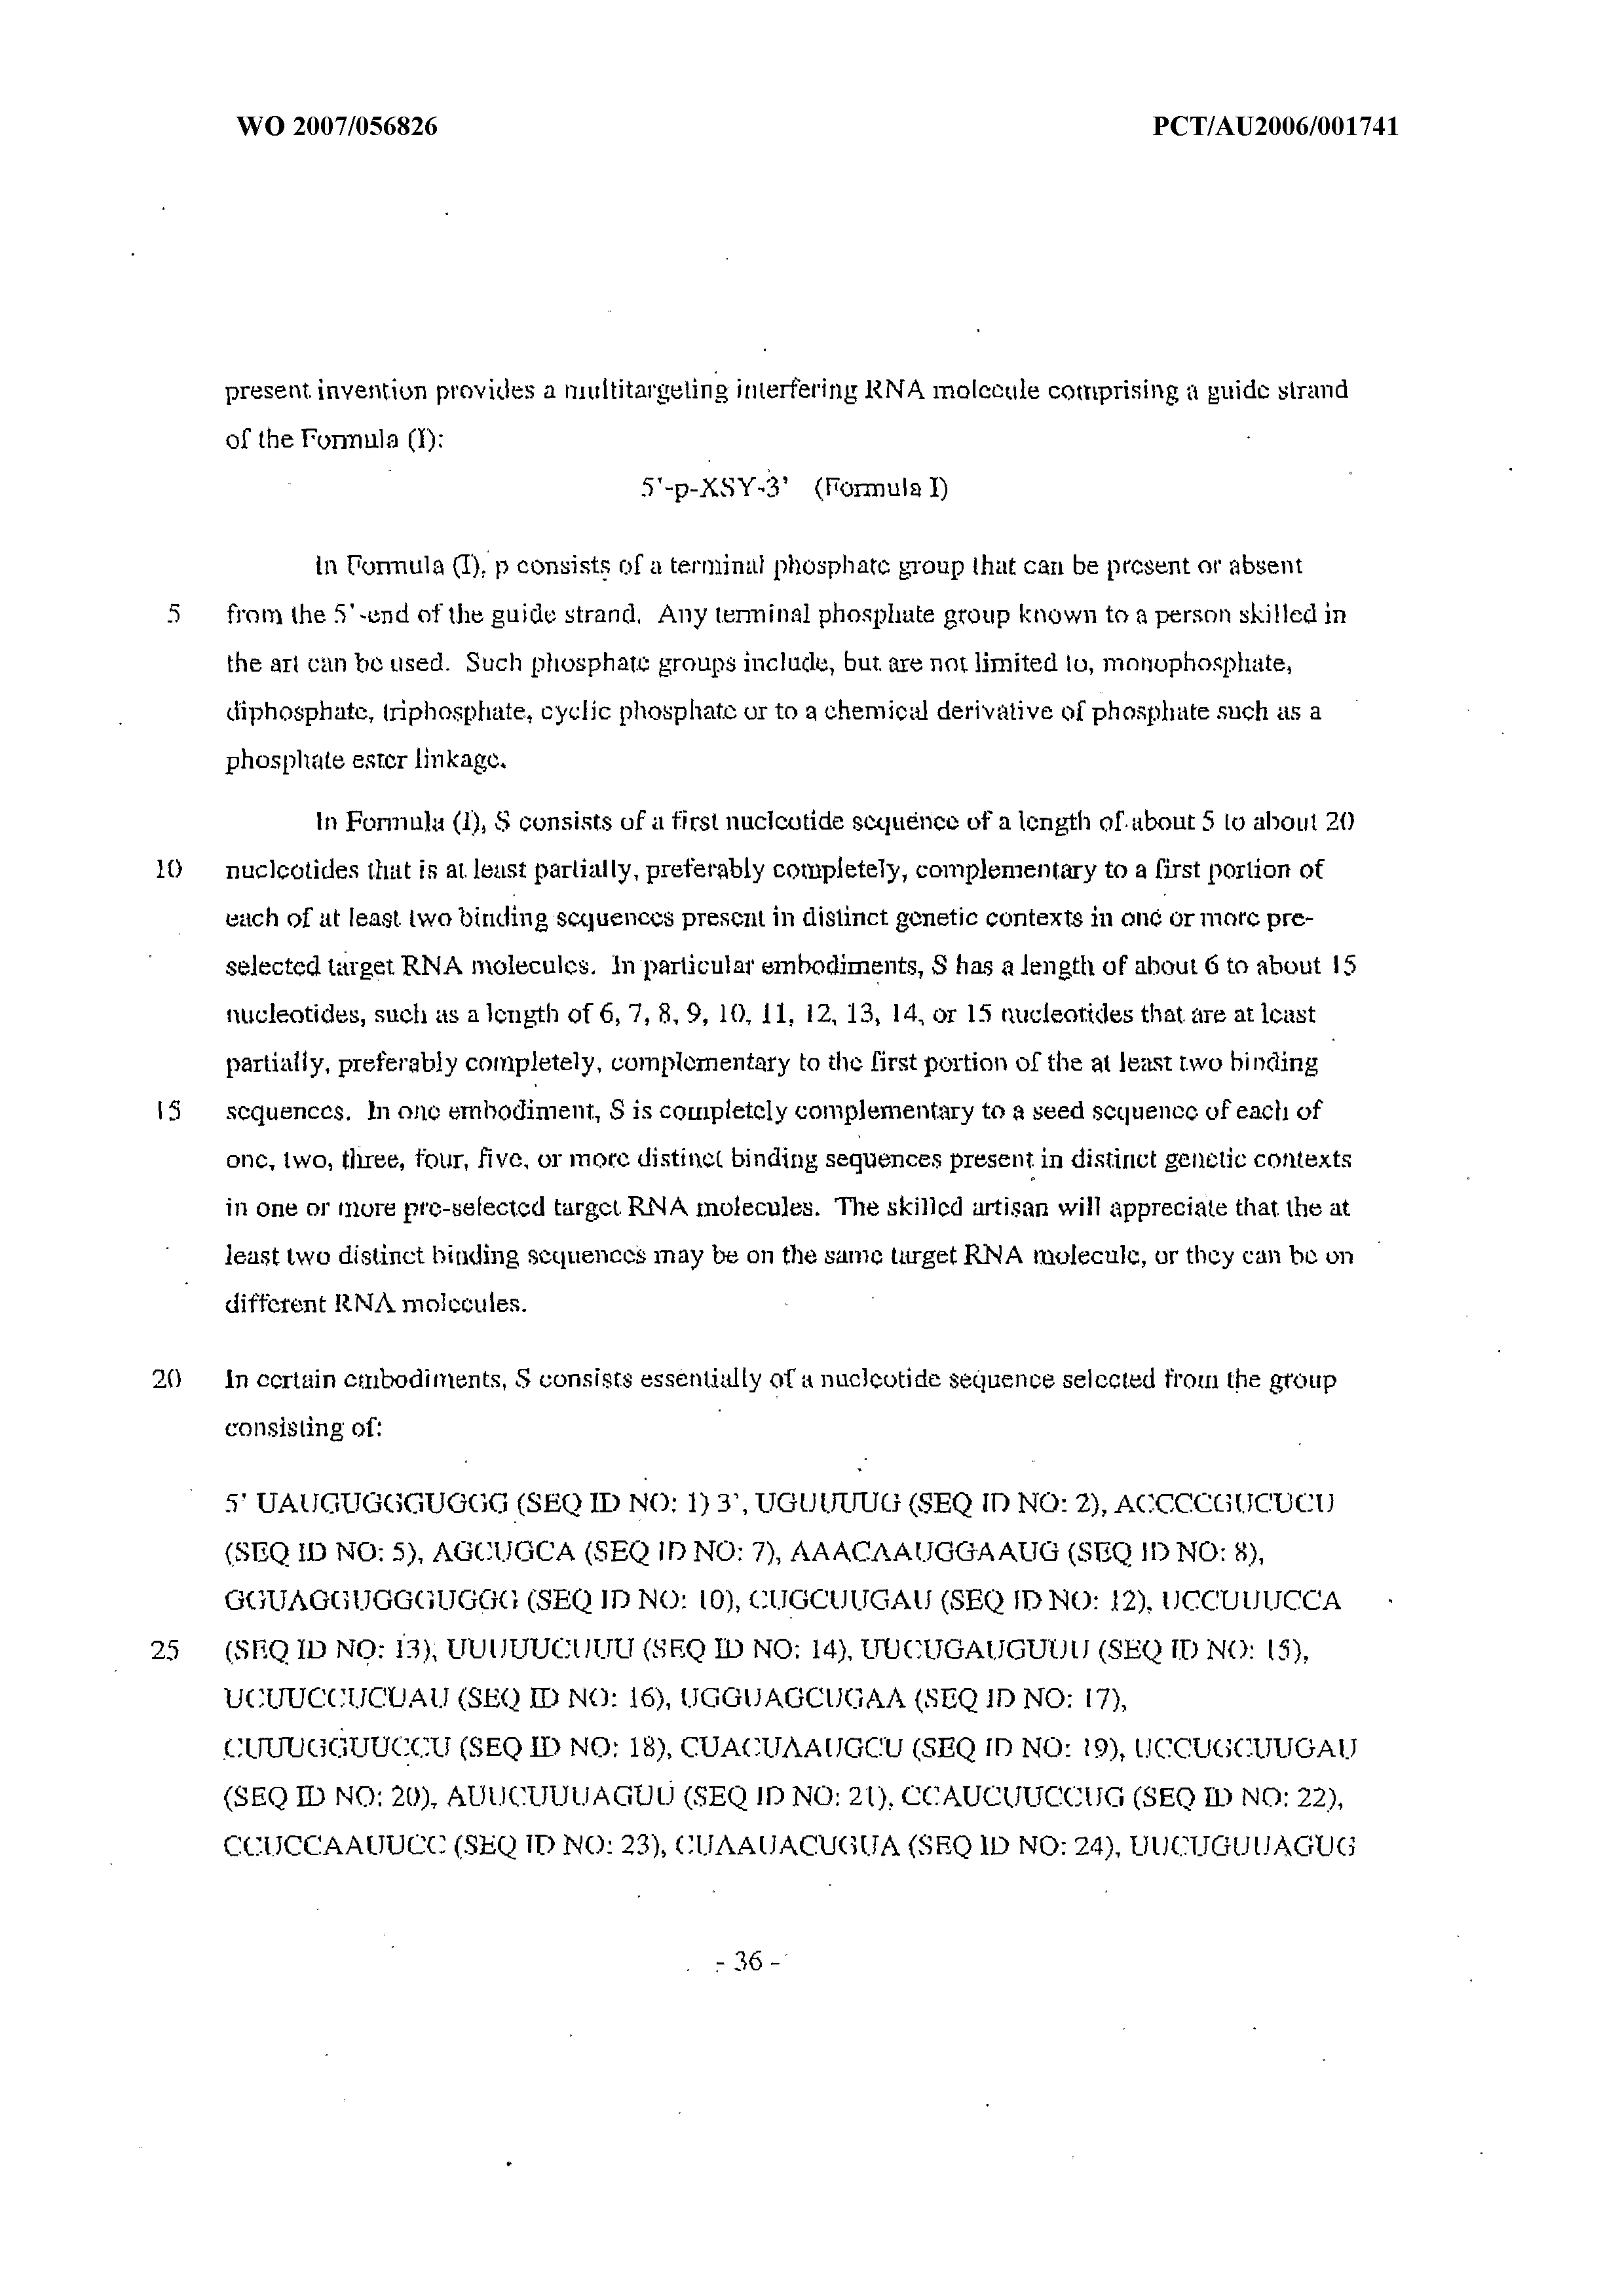 WO 2007/056826 A1 - Multitargeting Interfering Rnas And